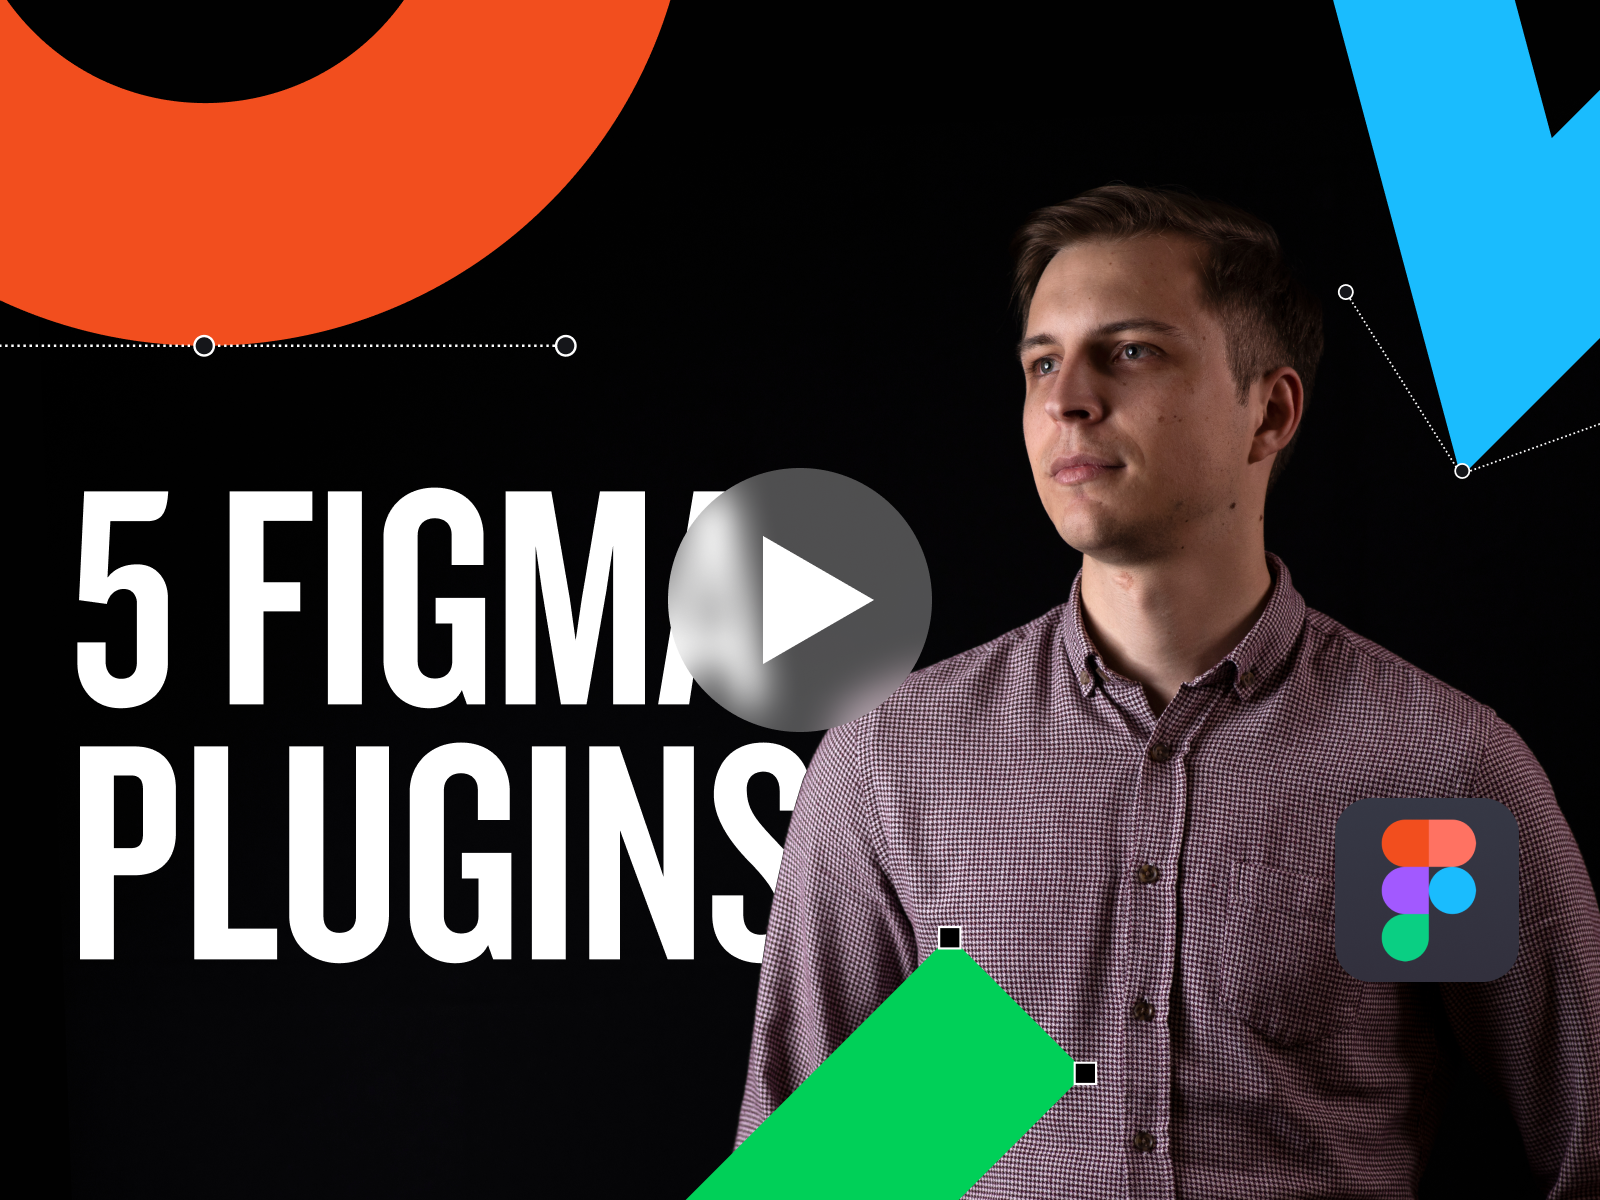 🎥 New Video —5 Figma Plugins for UI/UX Designers in 2021